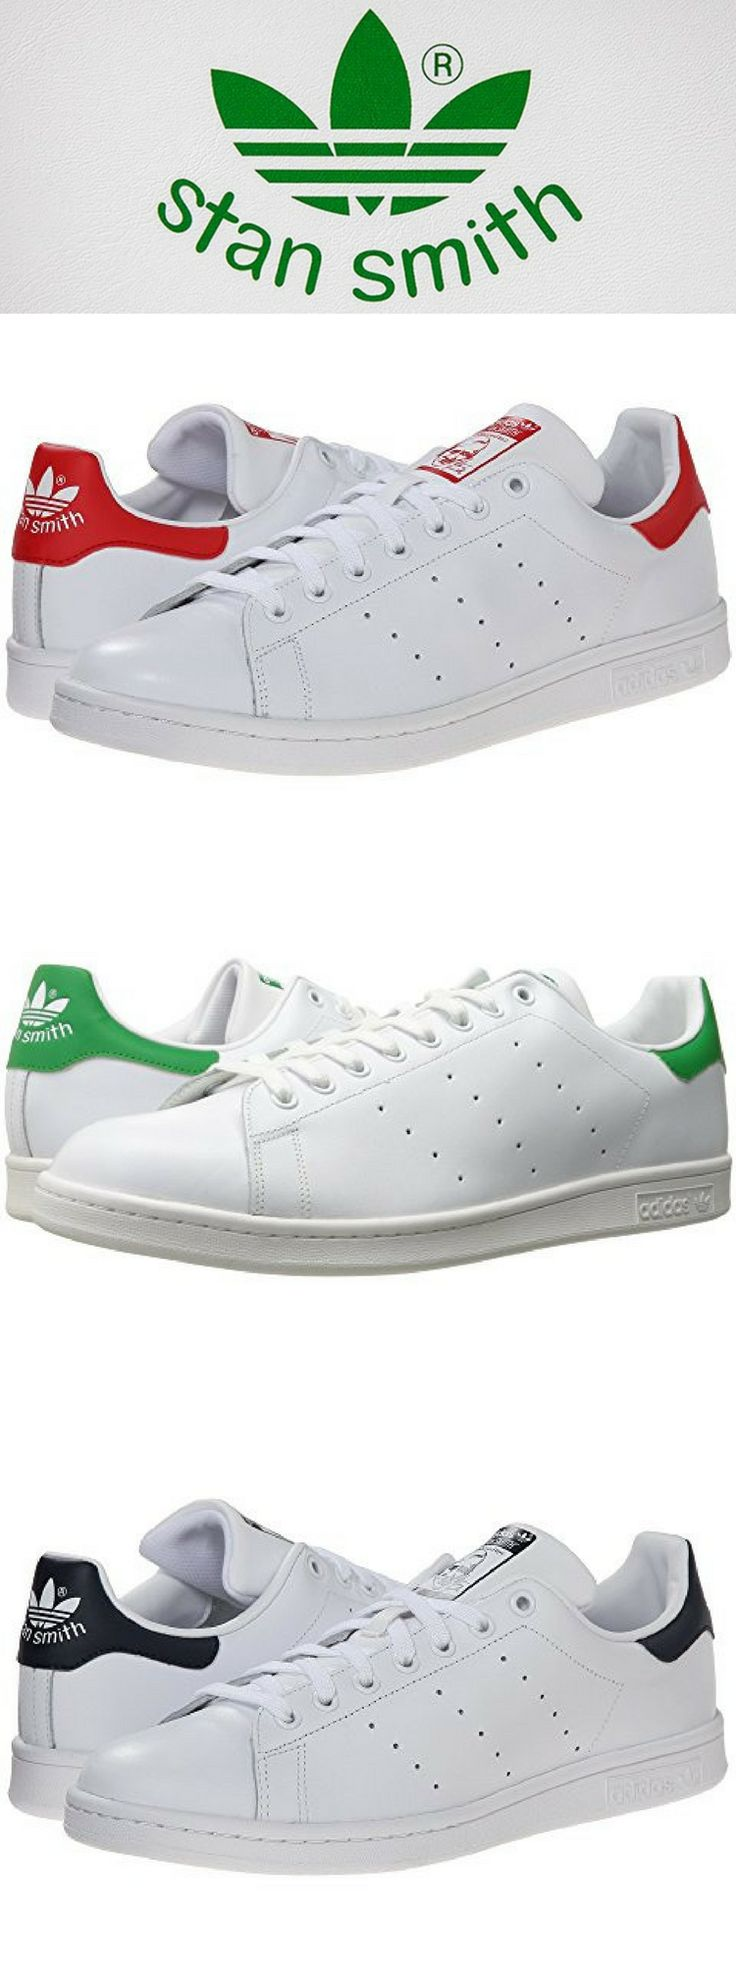 Adidas Originals - Stan Smith Men's Classic Shoes